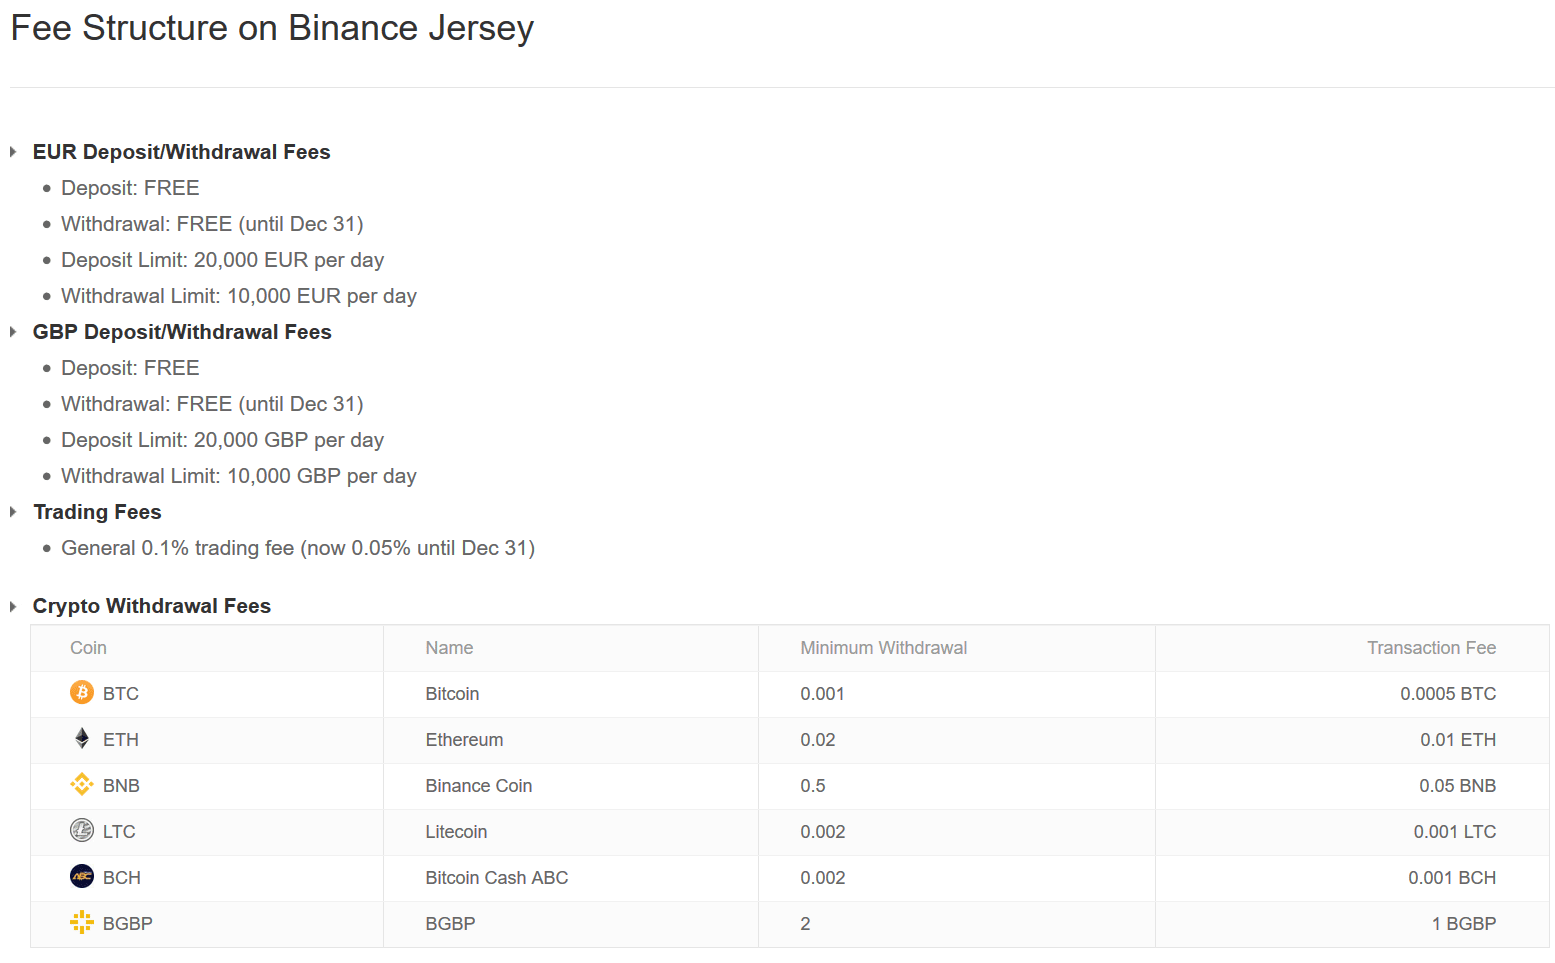 binance jersey fee